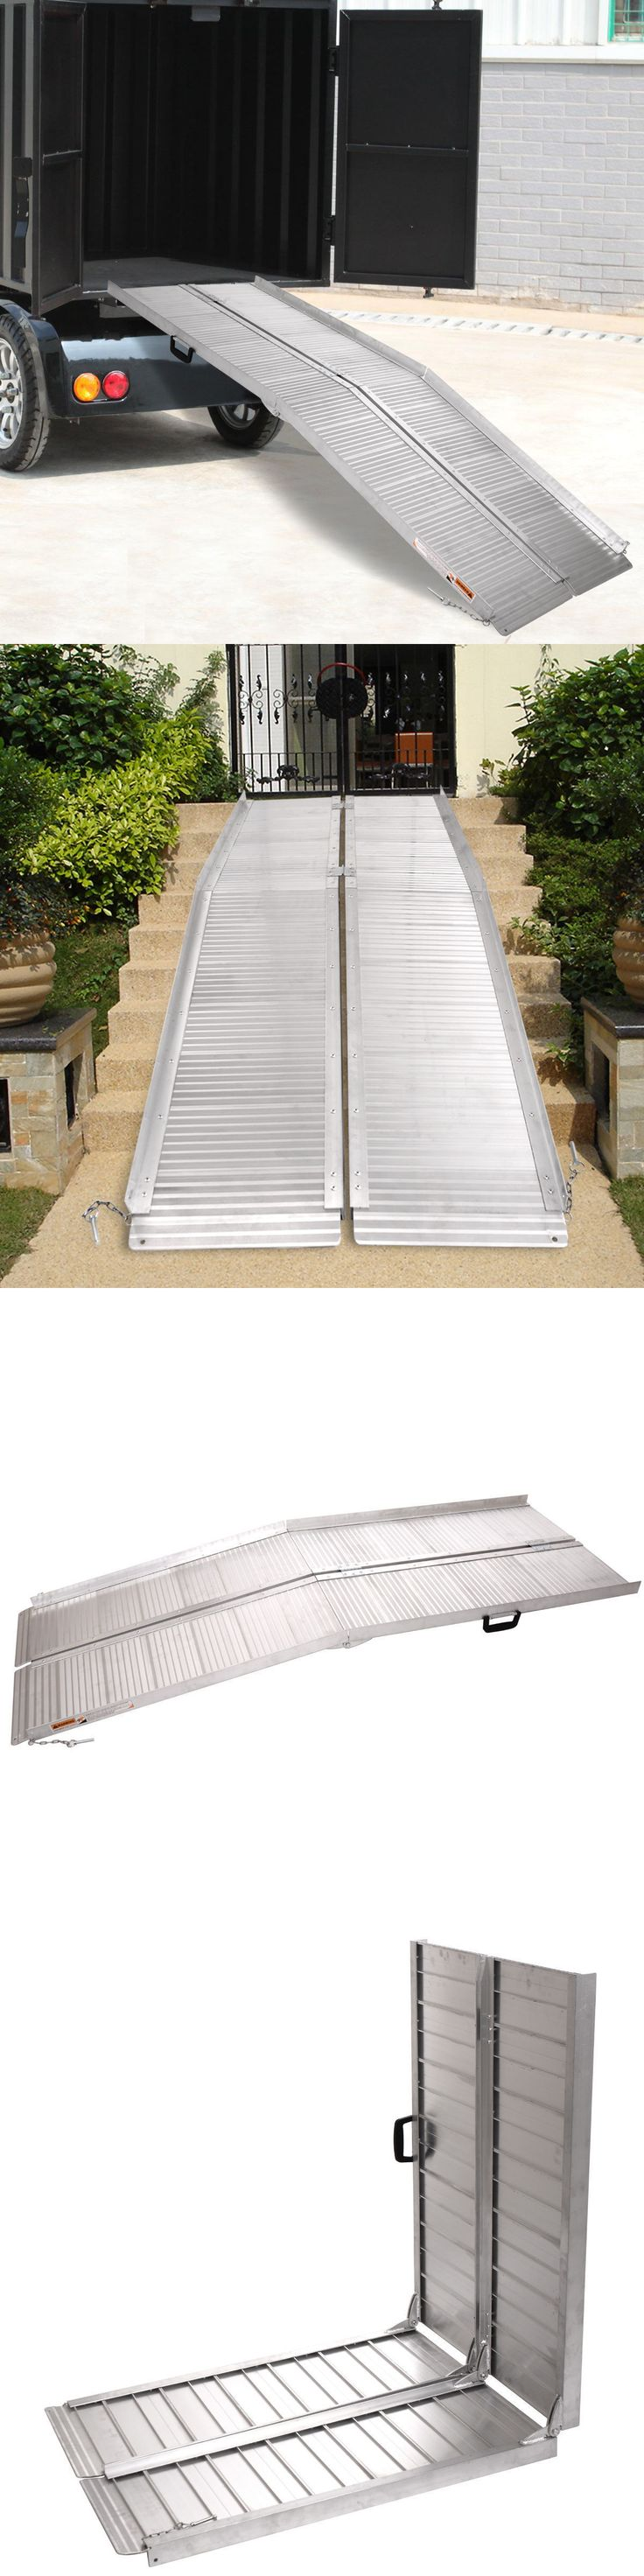 Access Ramps: 7 Aluminum Wheelchair Ramp Fold Handicap Scooter Ramp Portable Mobility BUY IT NOW ONLY: $175.99